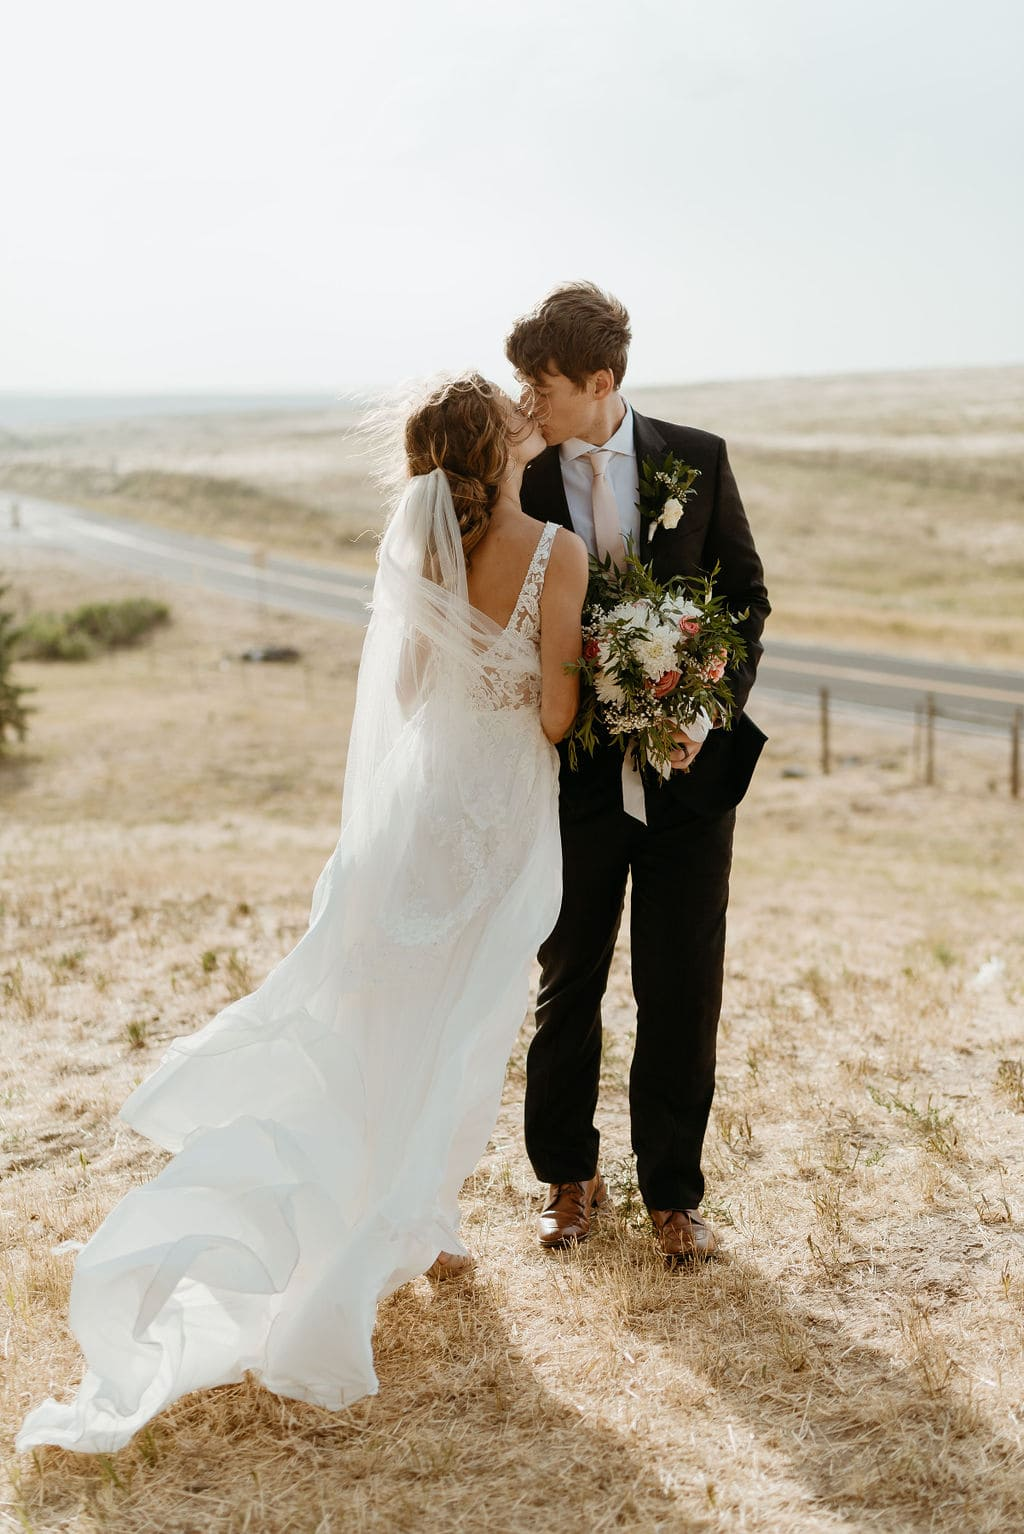 Romantic and Windy Film Inspired Bride and Groom Portraits at Bonnie Blues Event Venue